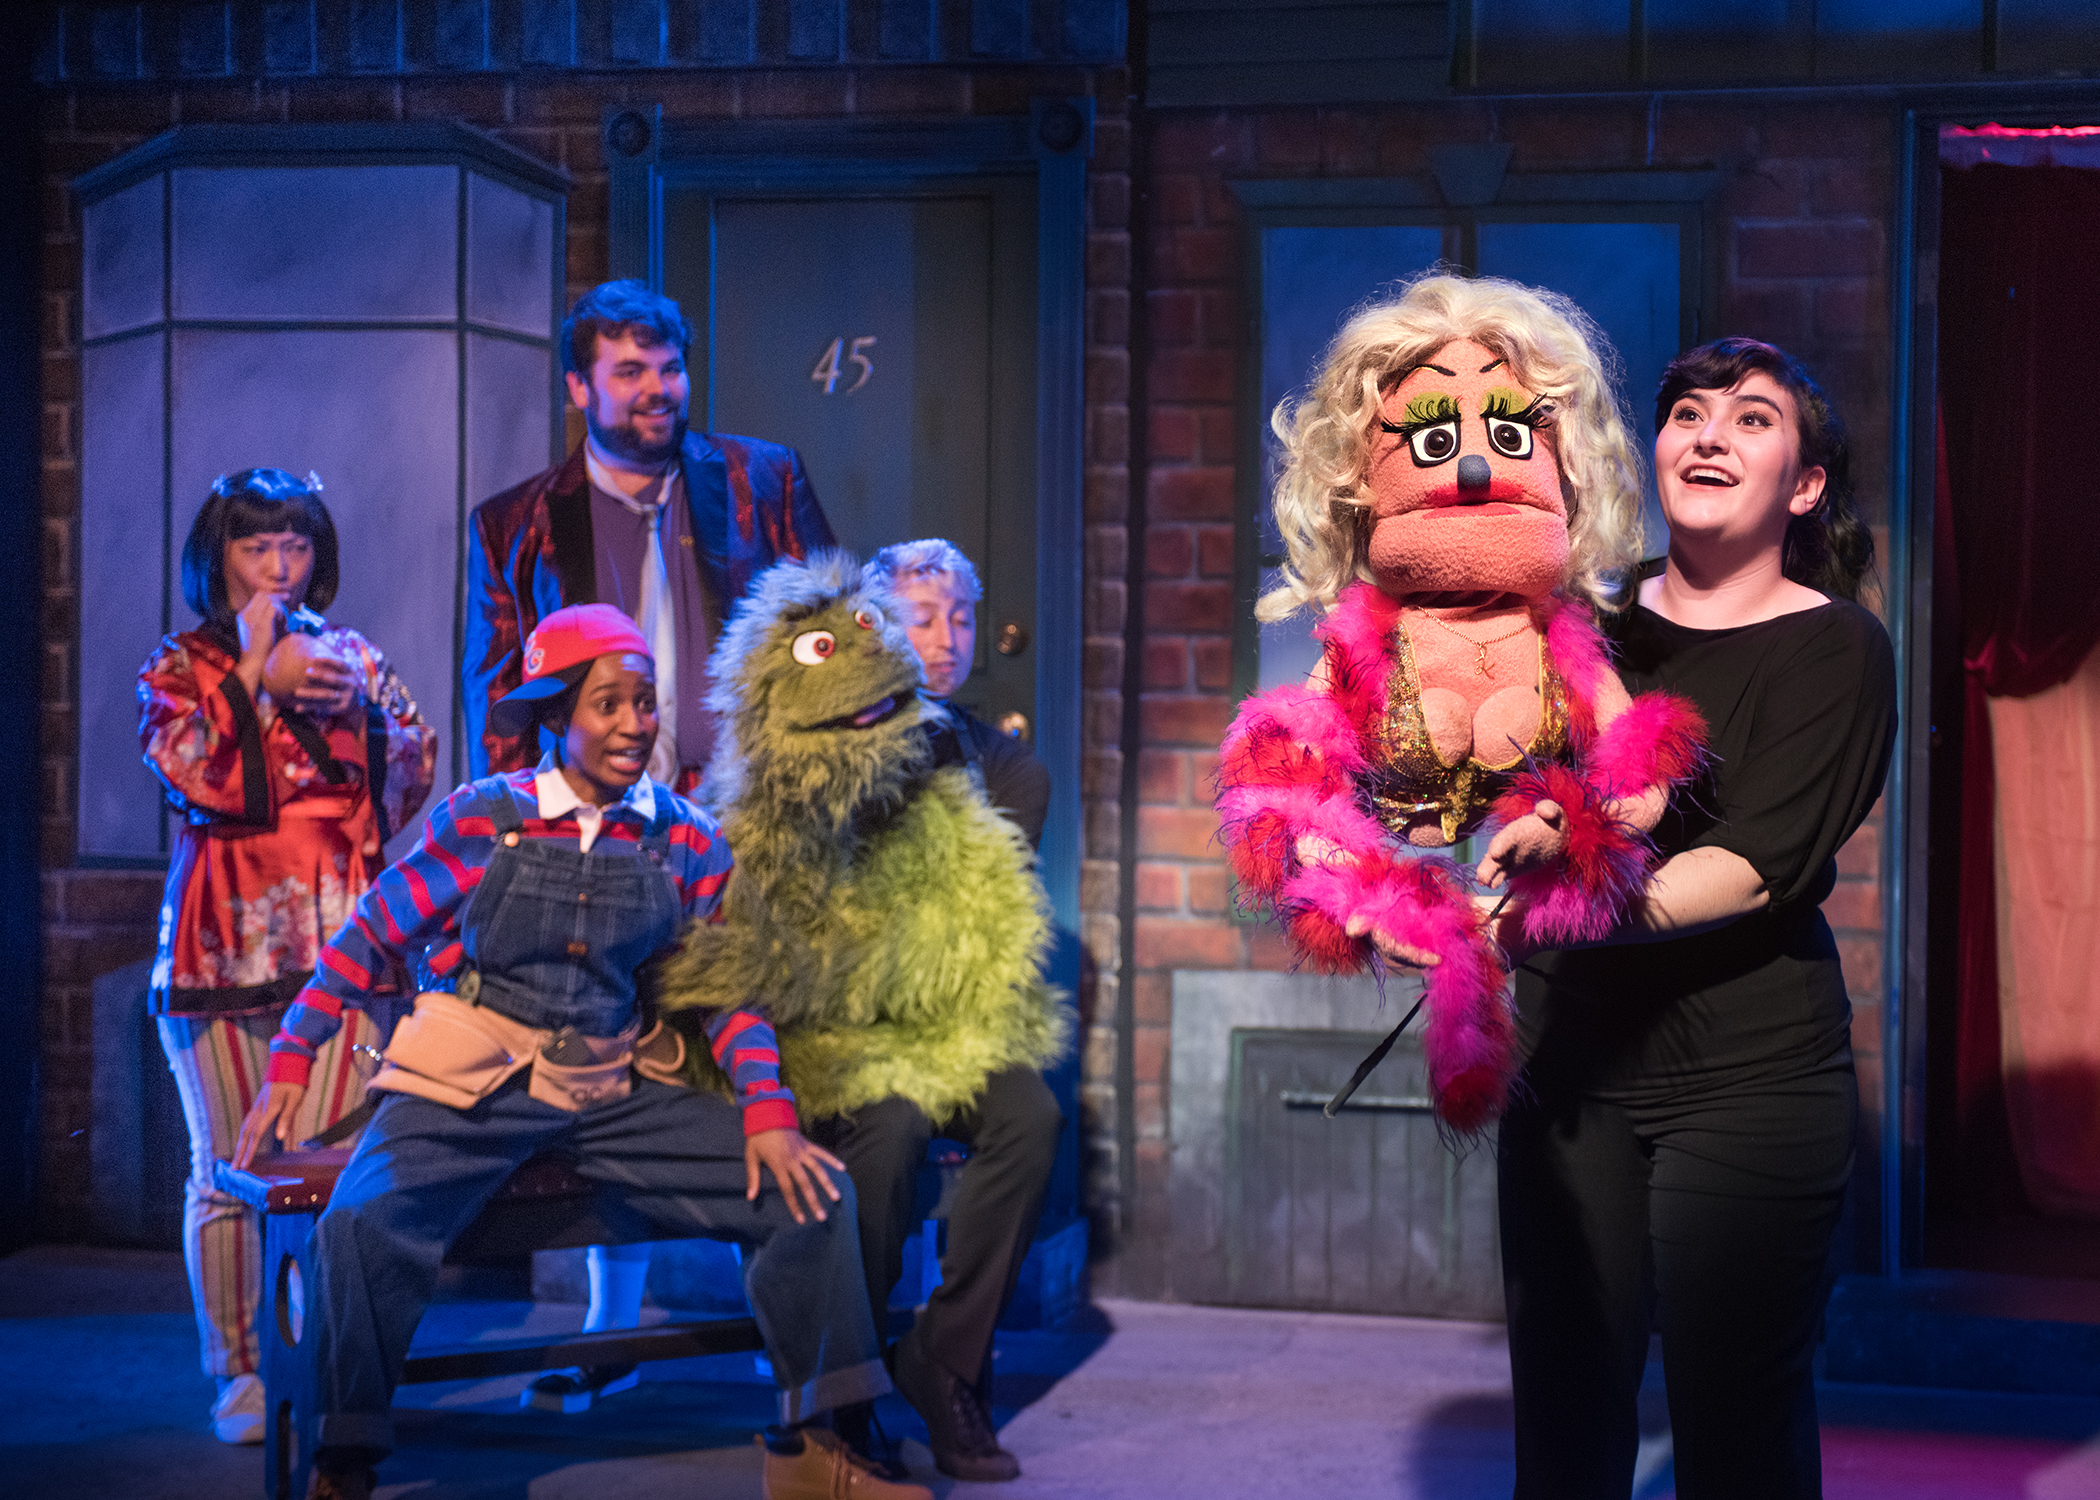 L to R: Christmas Eve (Isabel Anne To), Gary Coleman (Angel Adedokun, Brian (Ted Zoldan), and Trekkie Monster (Jake Gale) watch Lucy the Slut's (Maya Michal Sherer) 'special' performance. Photo by Lois Tema.